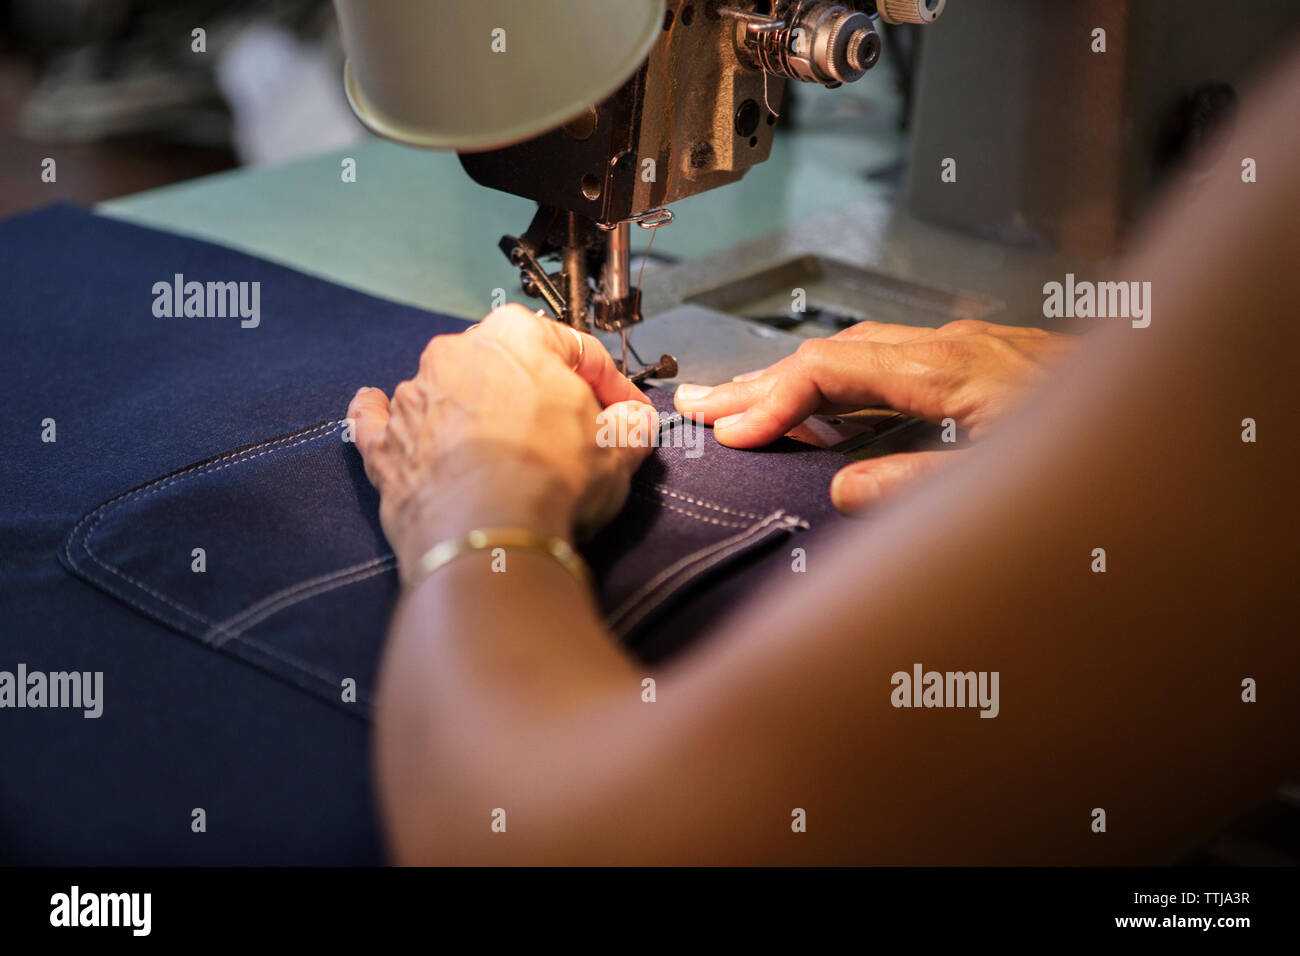 Close-up of woman sewing in textile factory - Stock Image